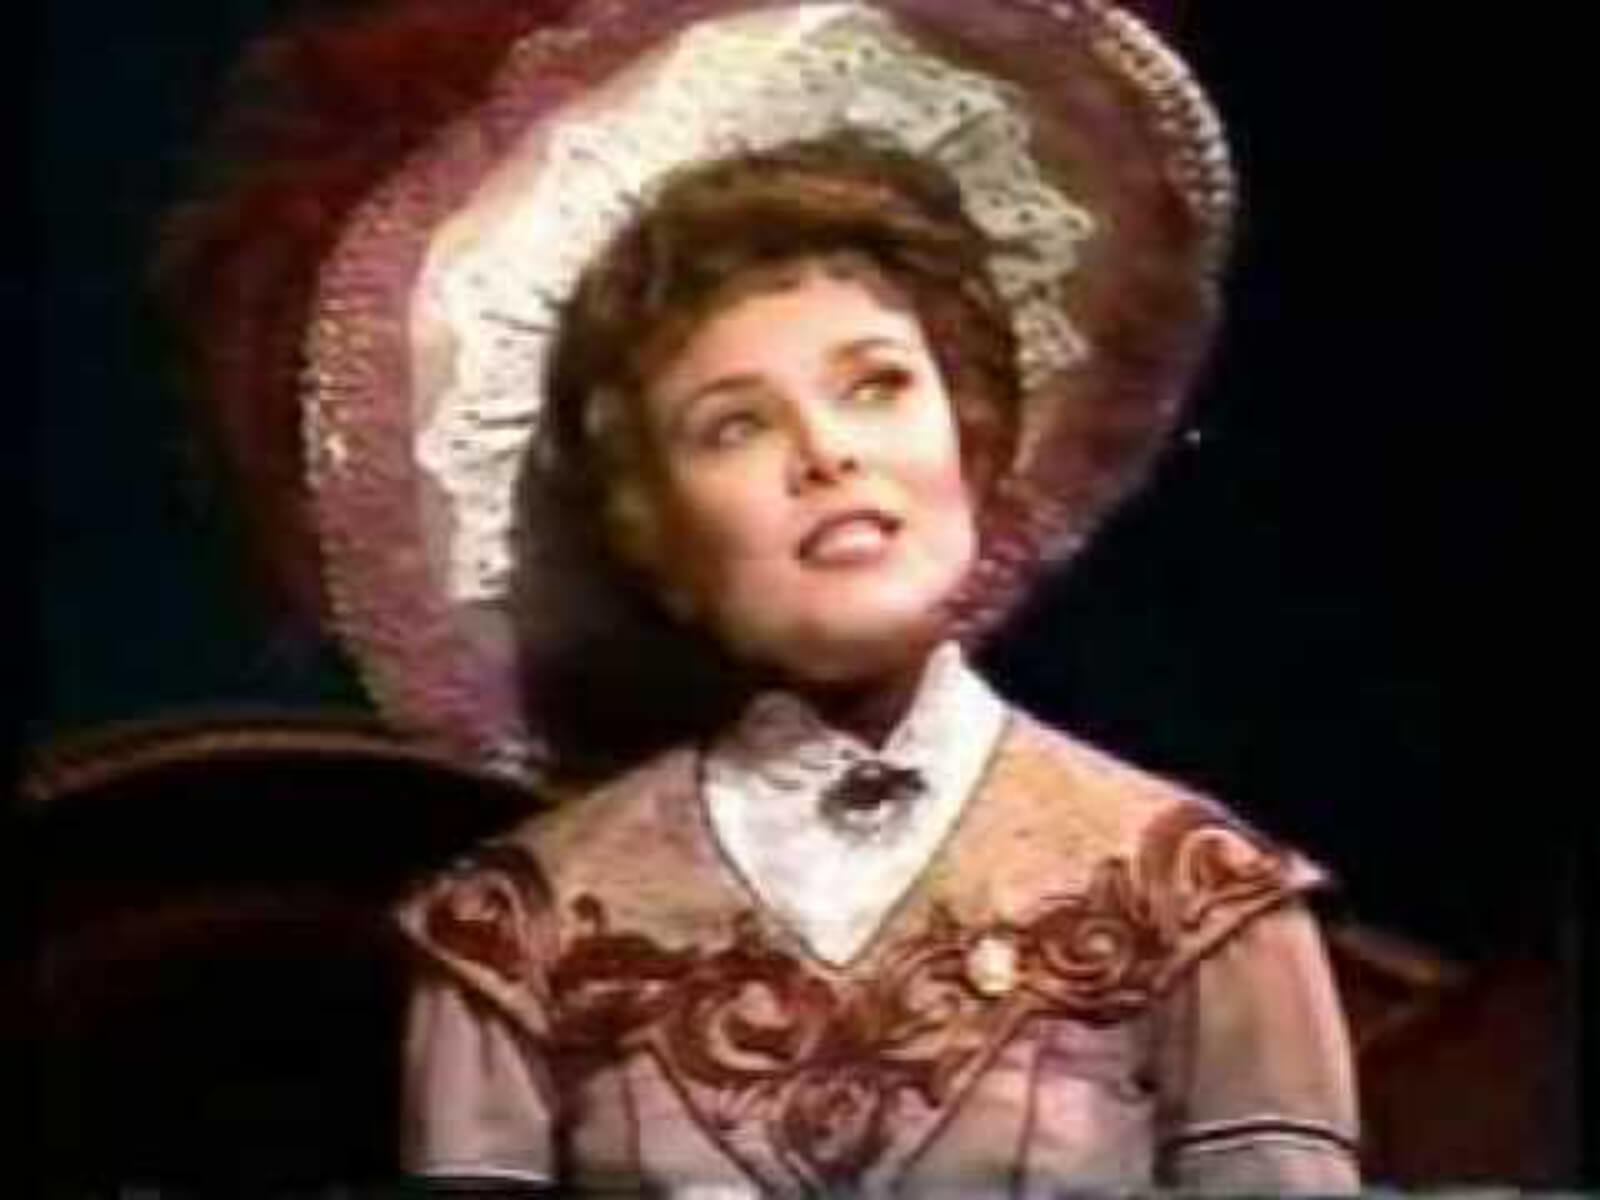 """Maureen Moore as Countess Charlotte singing """"Everyday a Little Death"""". She is wearing beautiful turn of the century hat and dress with white lace and peach embroidery."""